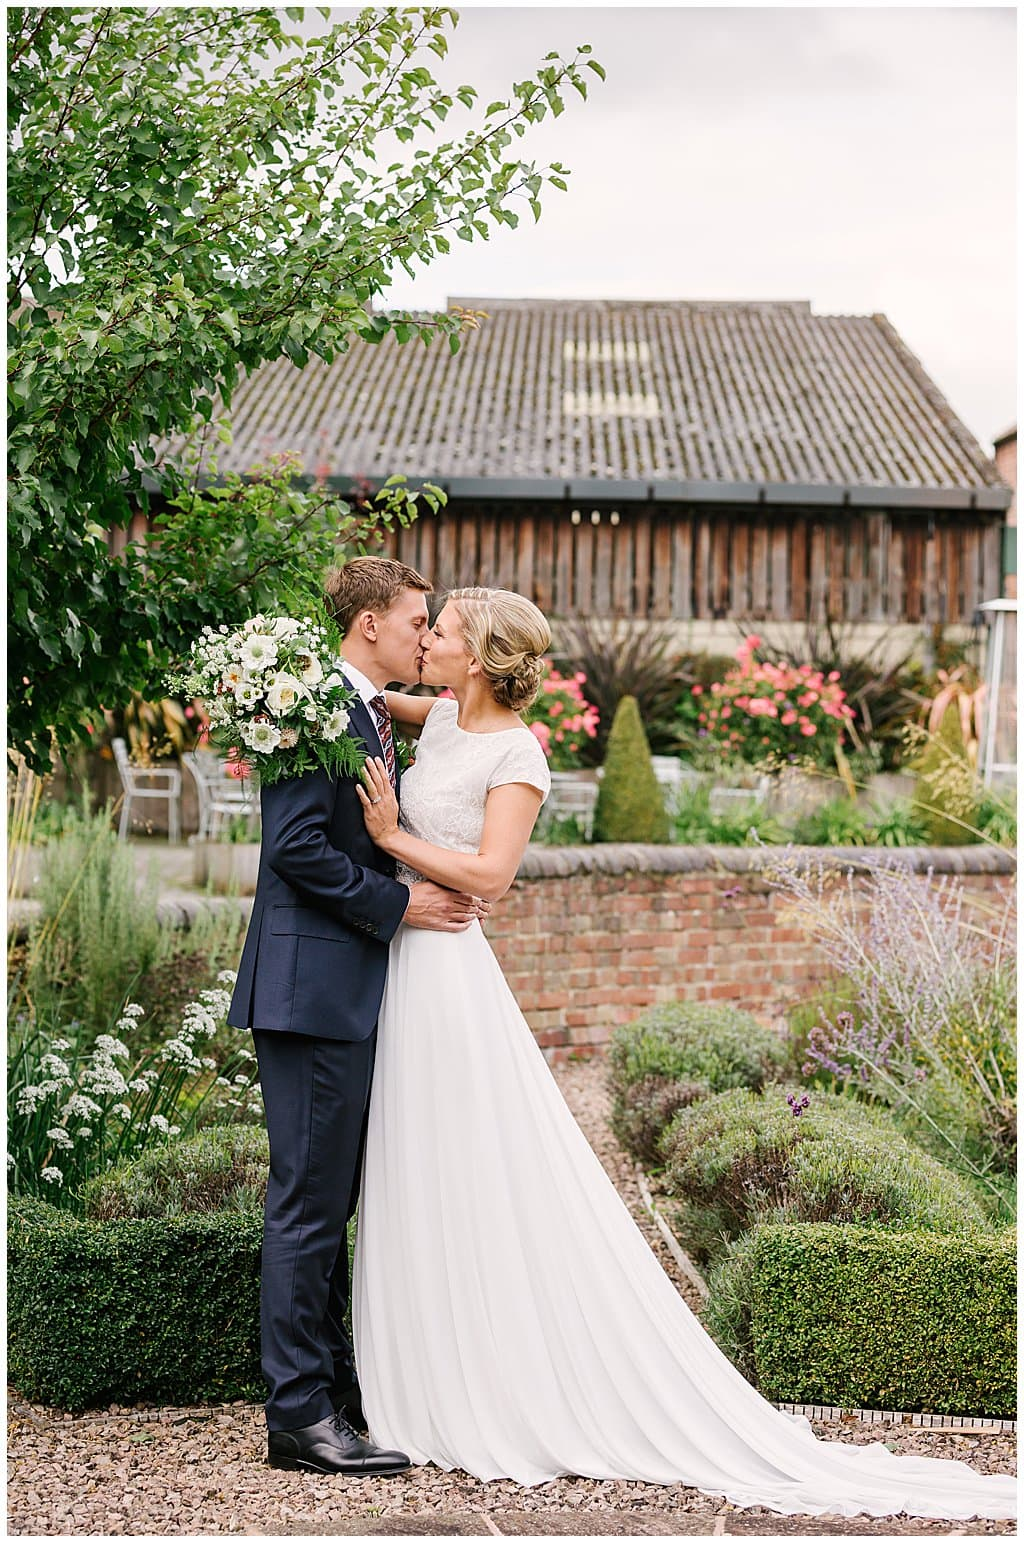 newly married couple kiss in front of a barn after their small wedding